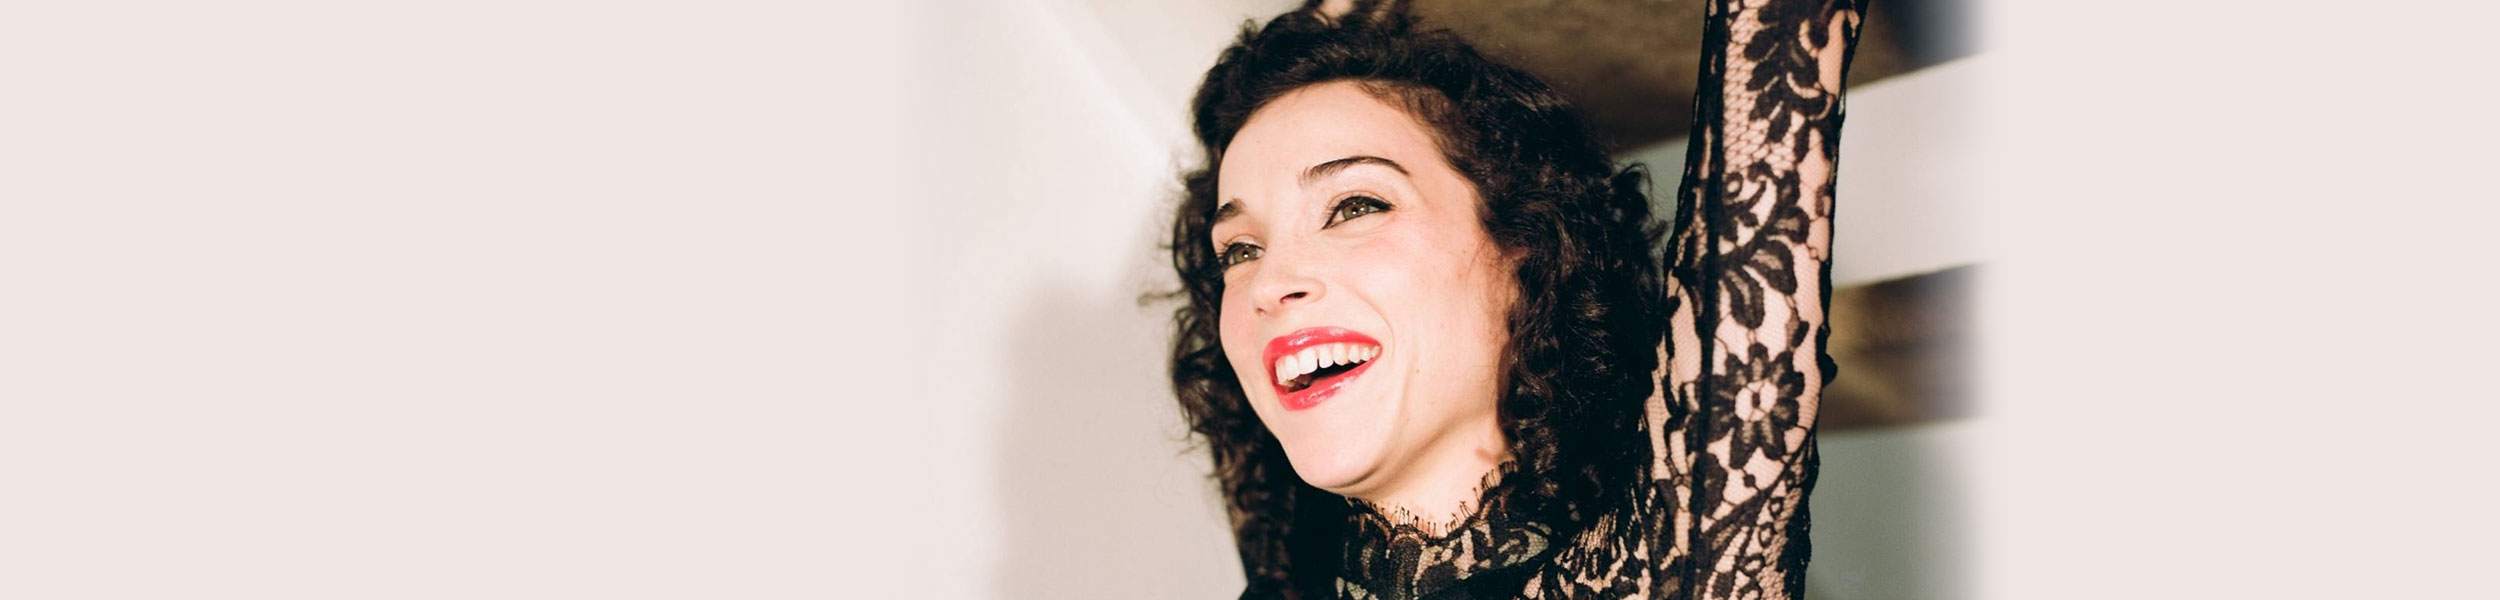 St. Vincent - St. Vincent Reveals First Song From New Album As Free MP3